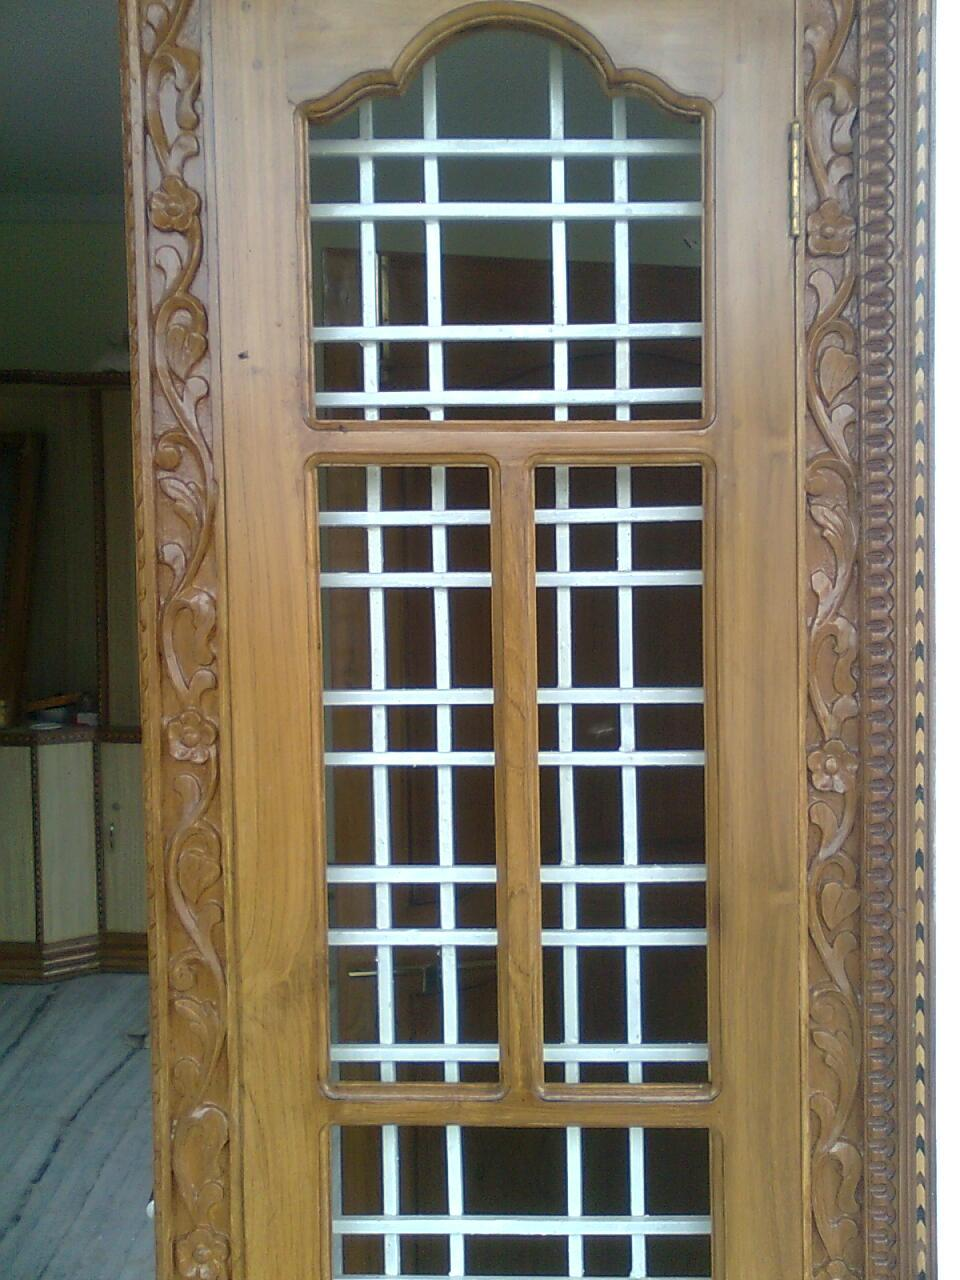 Door design with grills - GharExpert